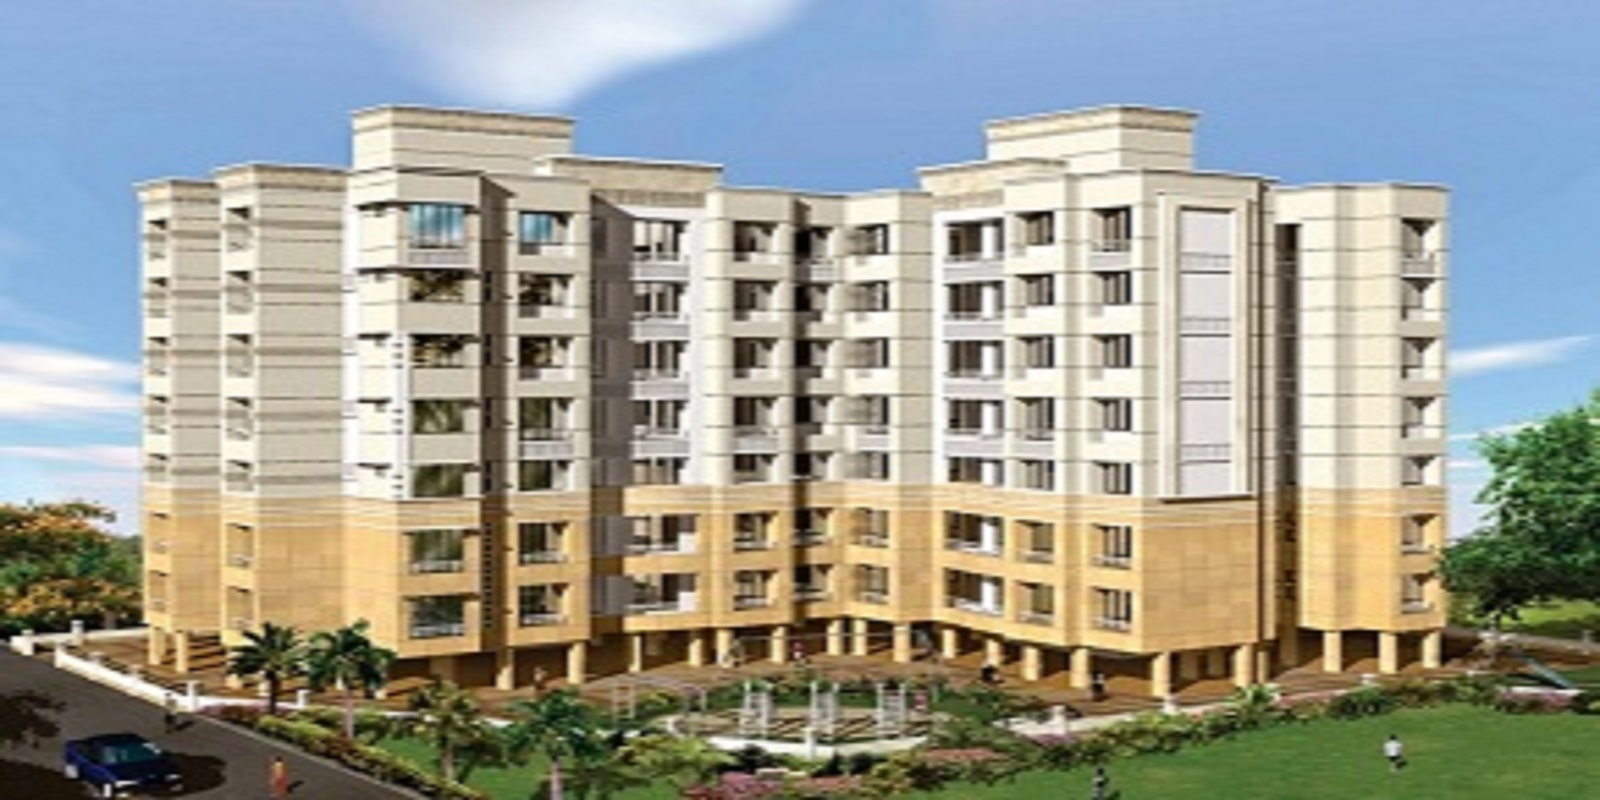 raj rudram apartments project project large image1